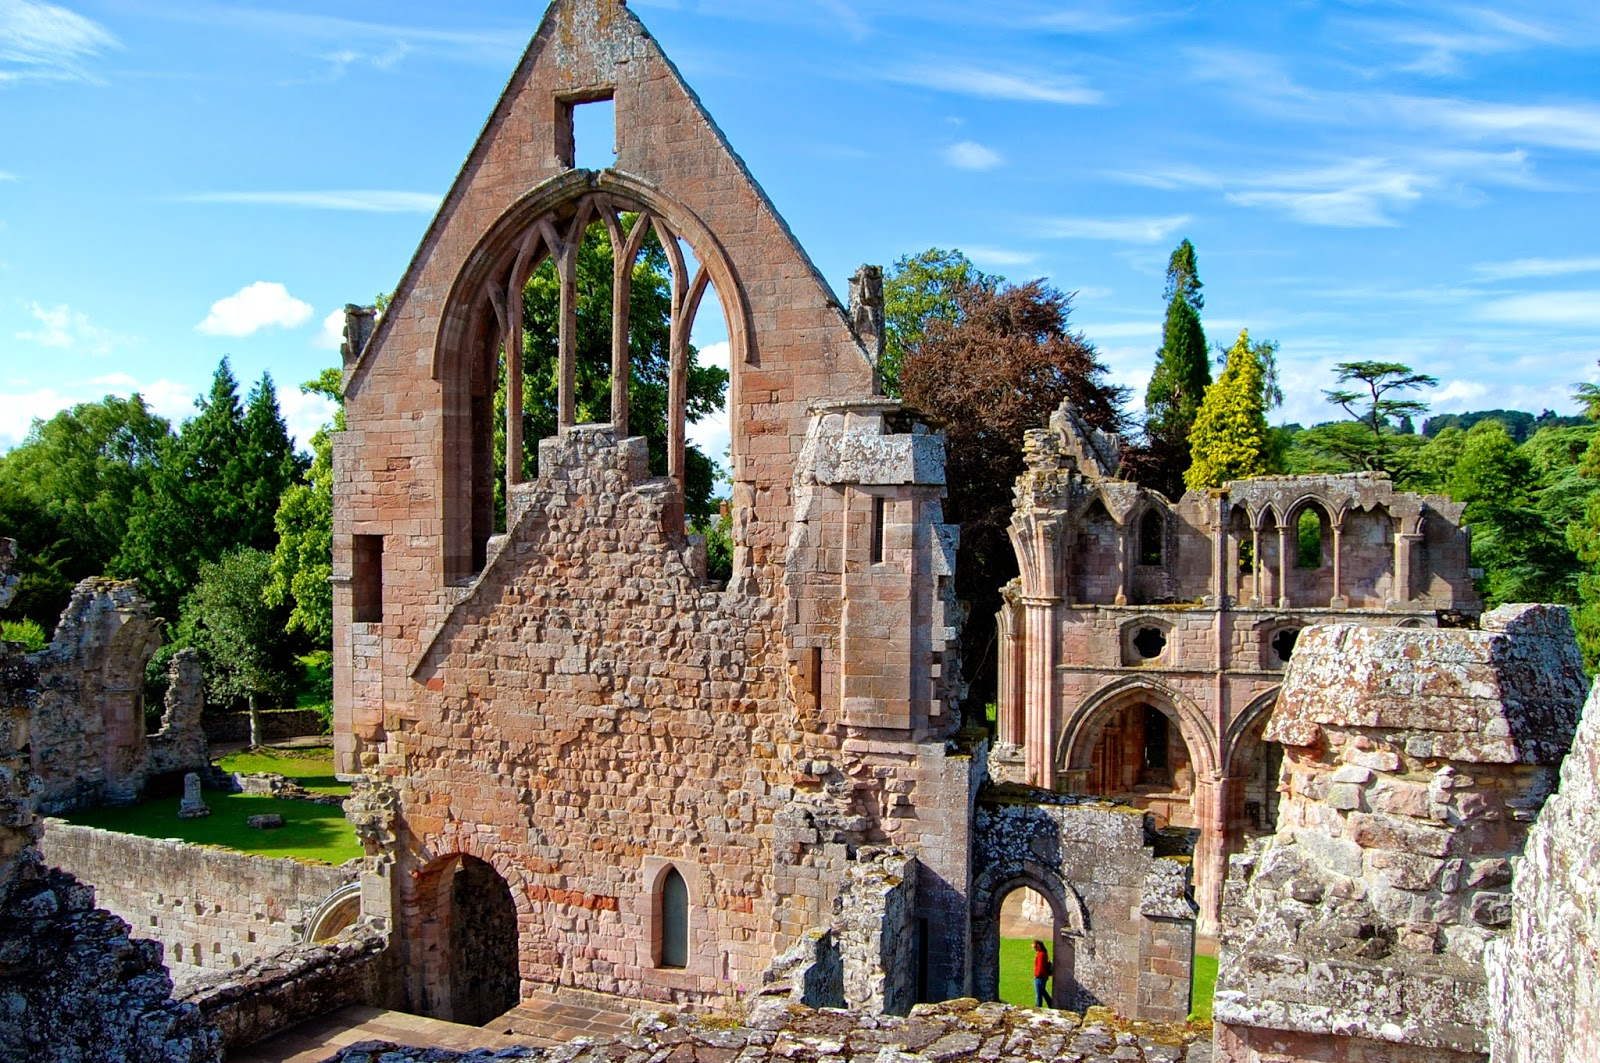 View of the Dryburgh Abbey ruins from a tower